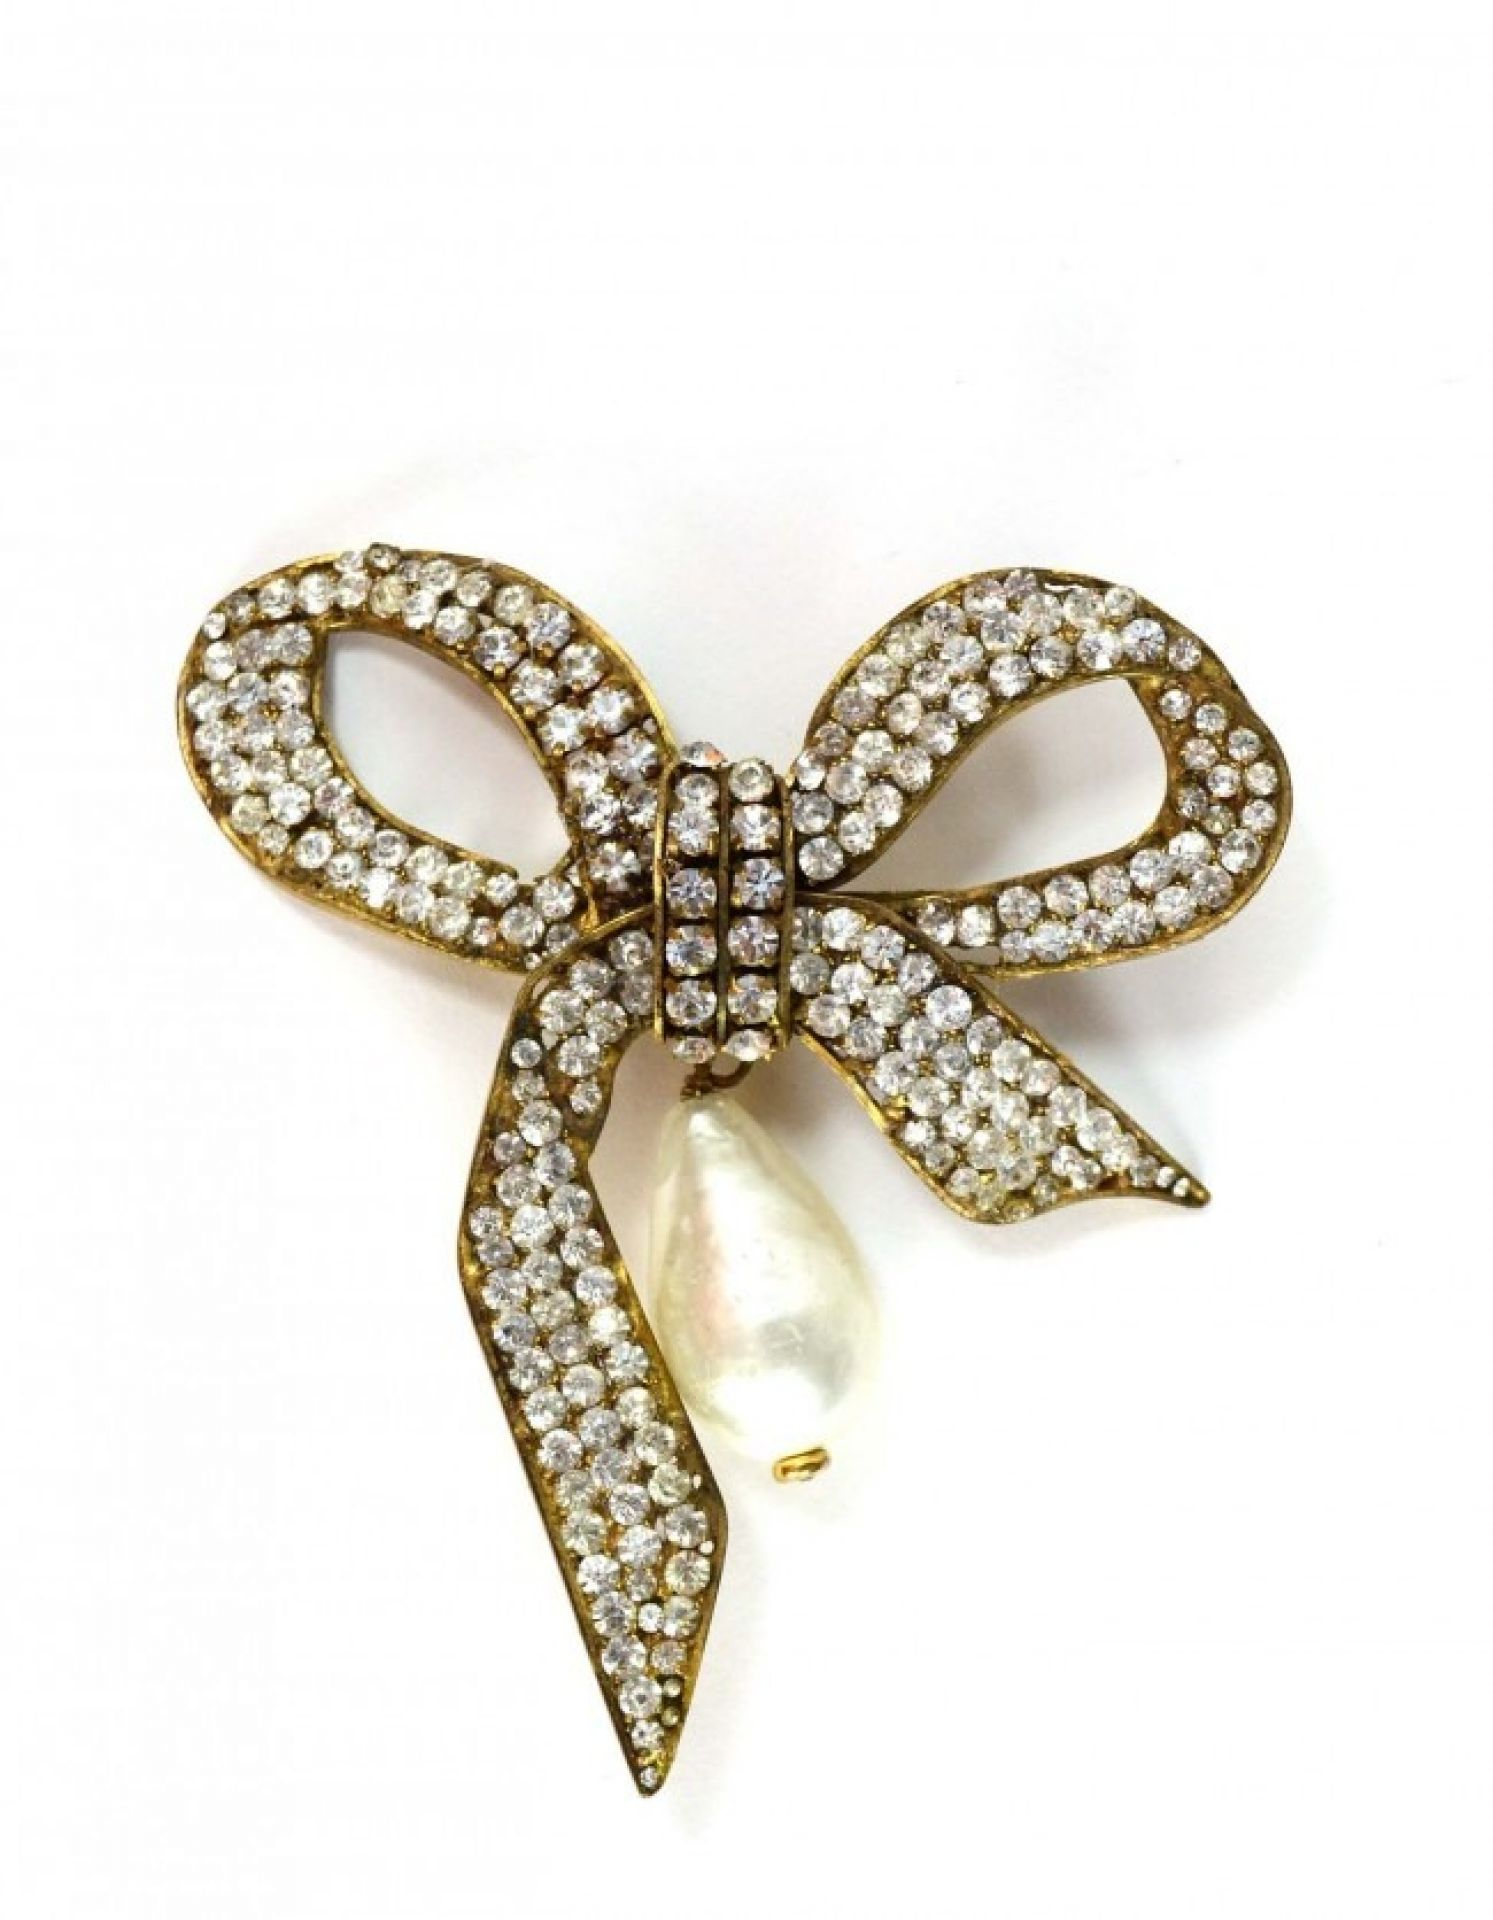 Chanel Vintage '70s Gold Crystal & Pearl Bow Brooch